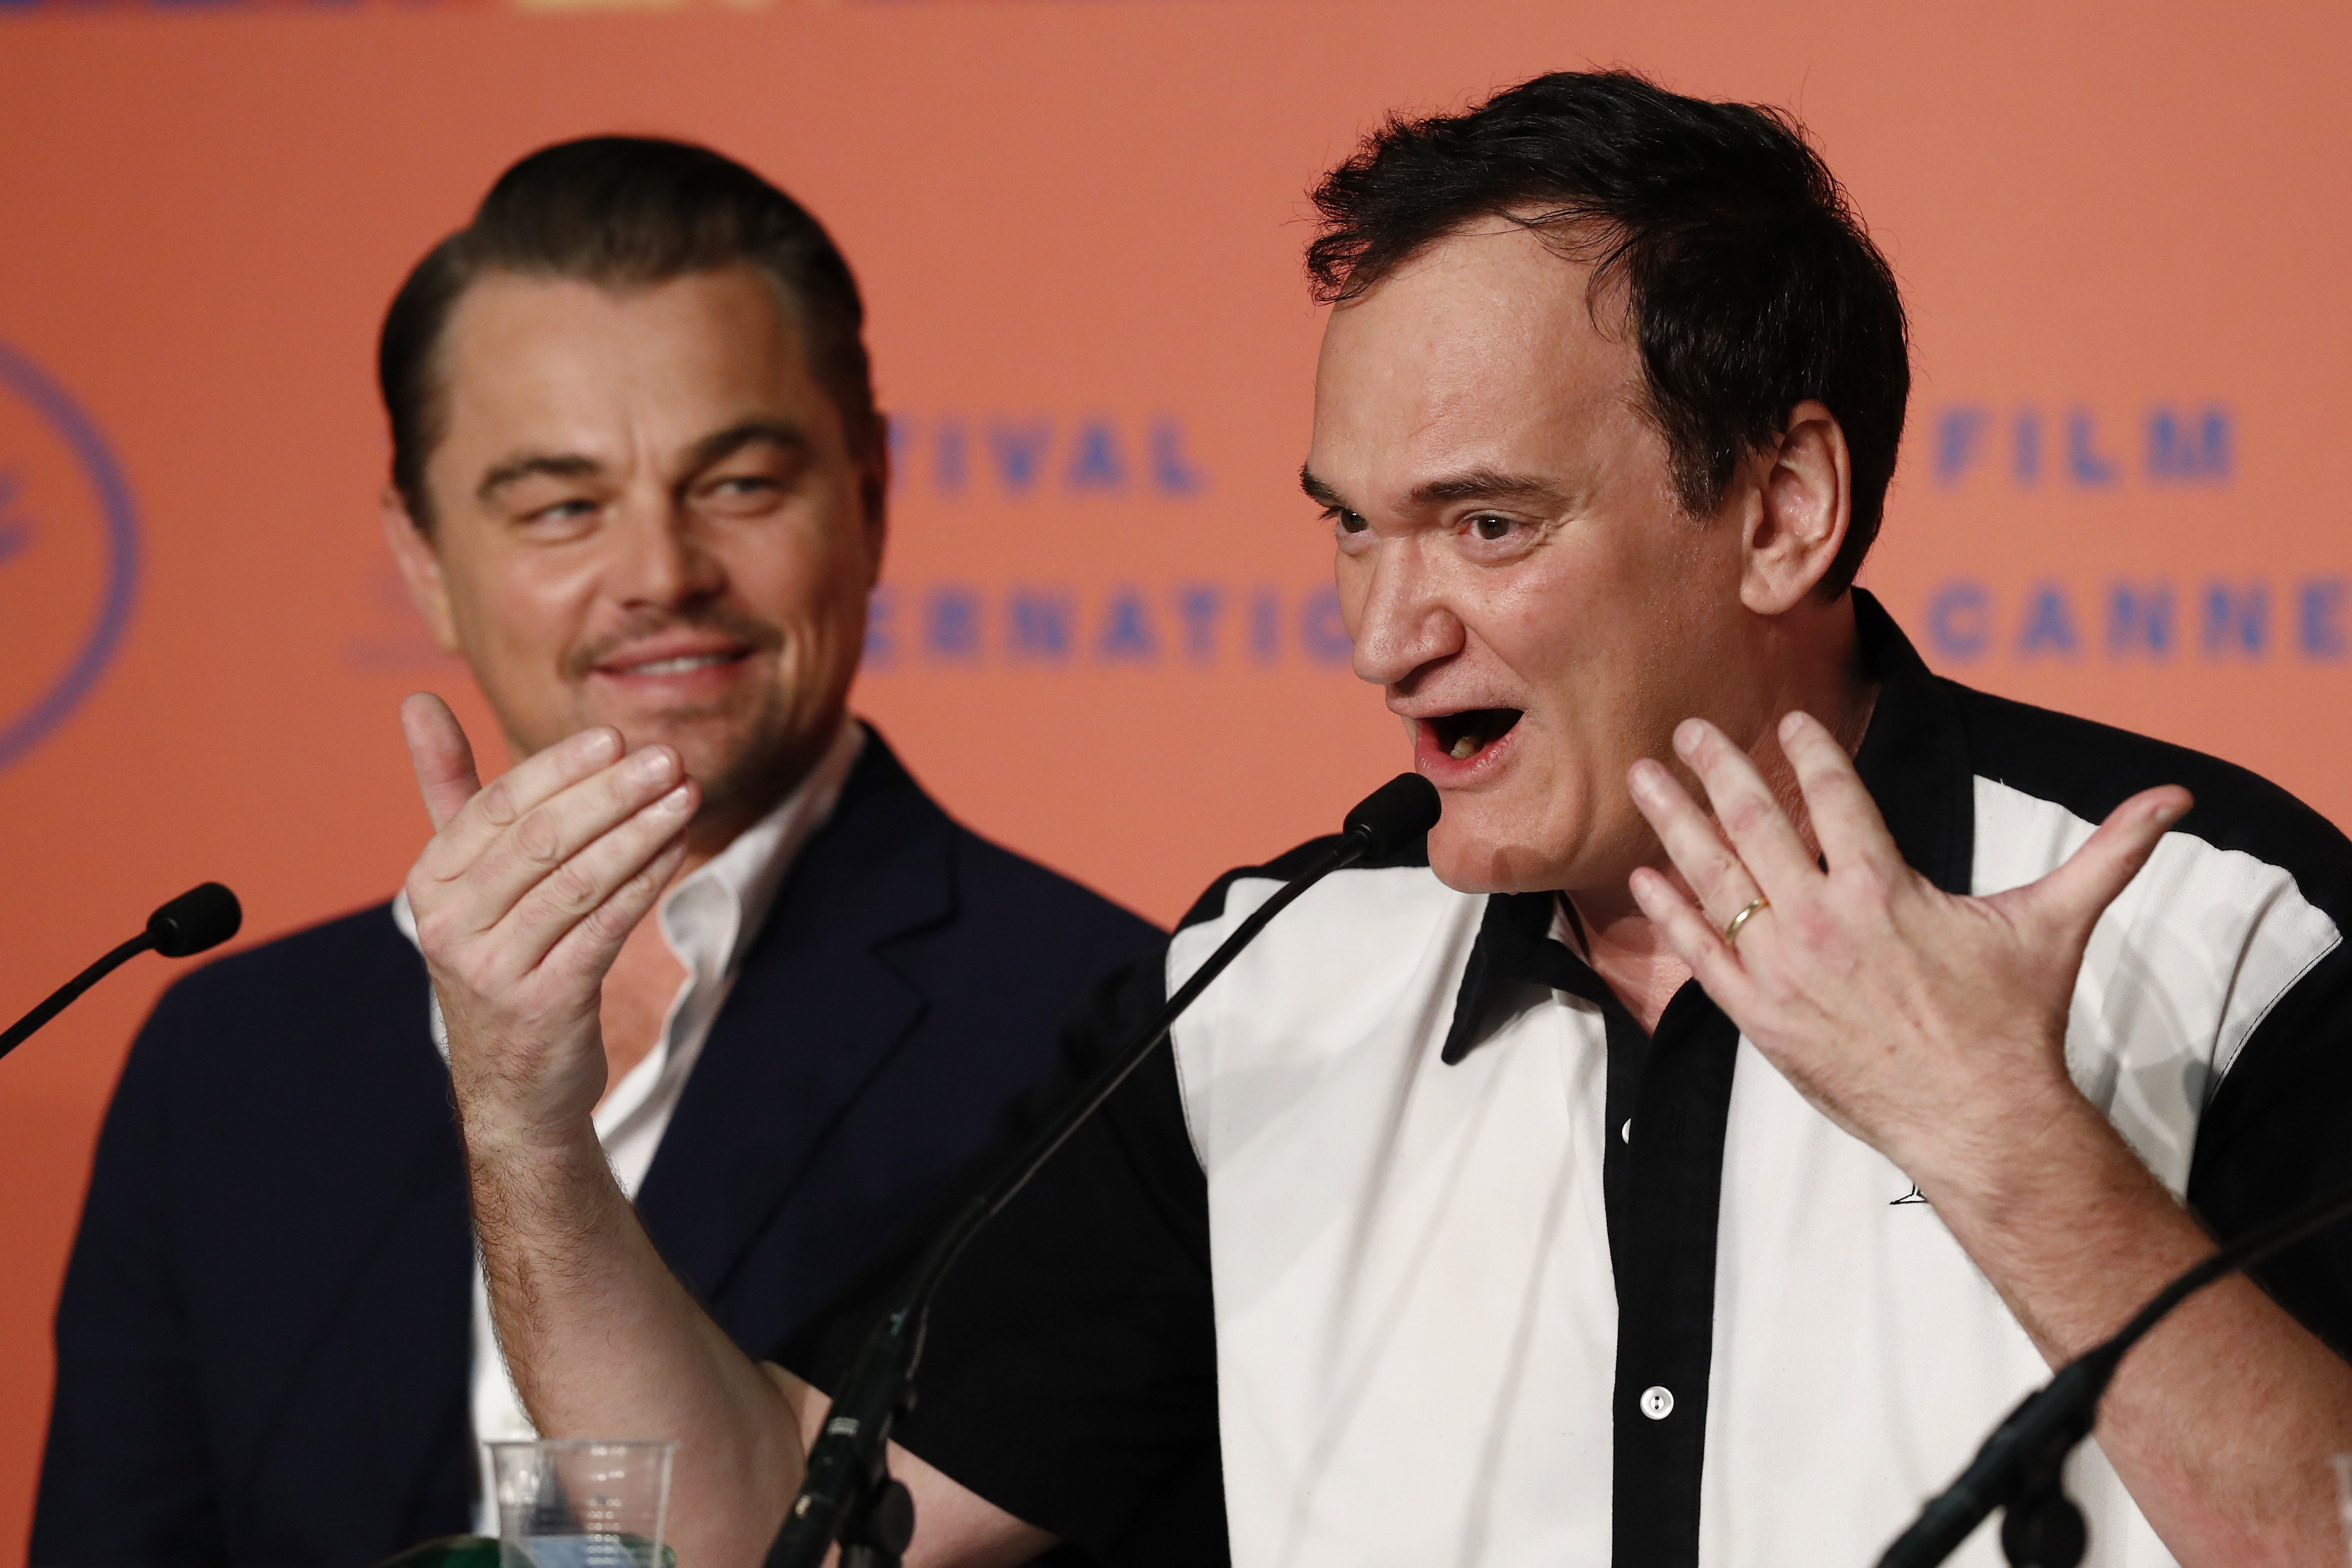 """Leonardo DiCaprio and Director Quentin Tarantino attend the """"Once Upon A Time In Hollywood"""" Press Conference during the 72nd annual Cannes Film Festival on May 22, 2019 